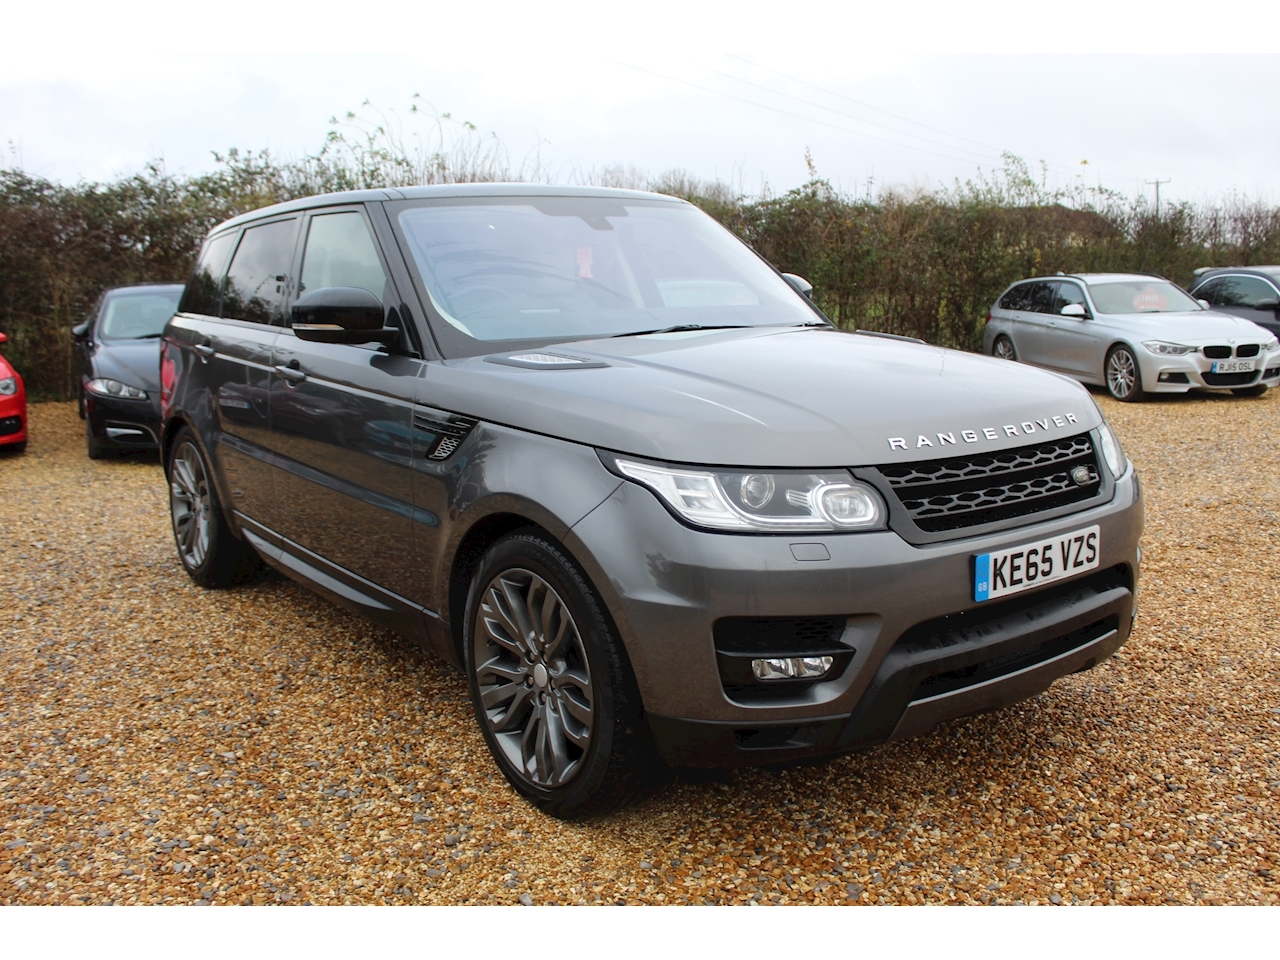 Land Rover Range Rover Sport Hse Dynamic 3.0 5dr Estate Automatic Diesel